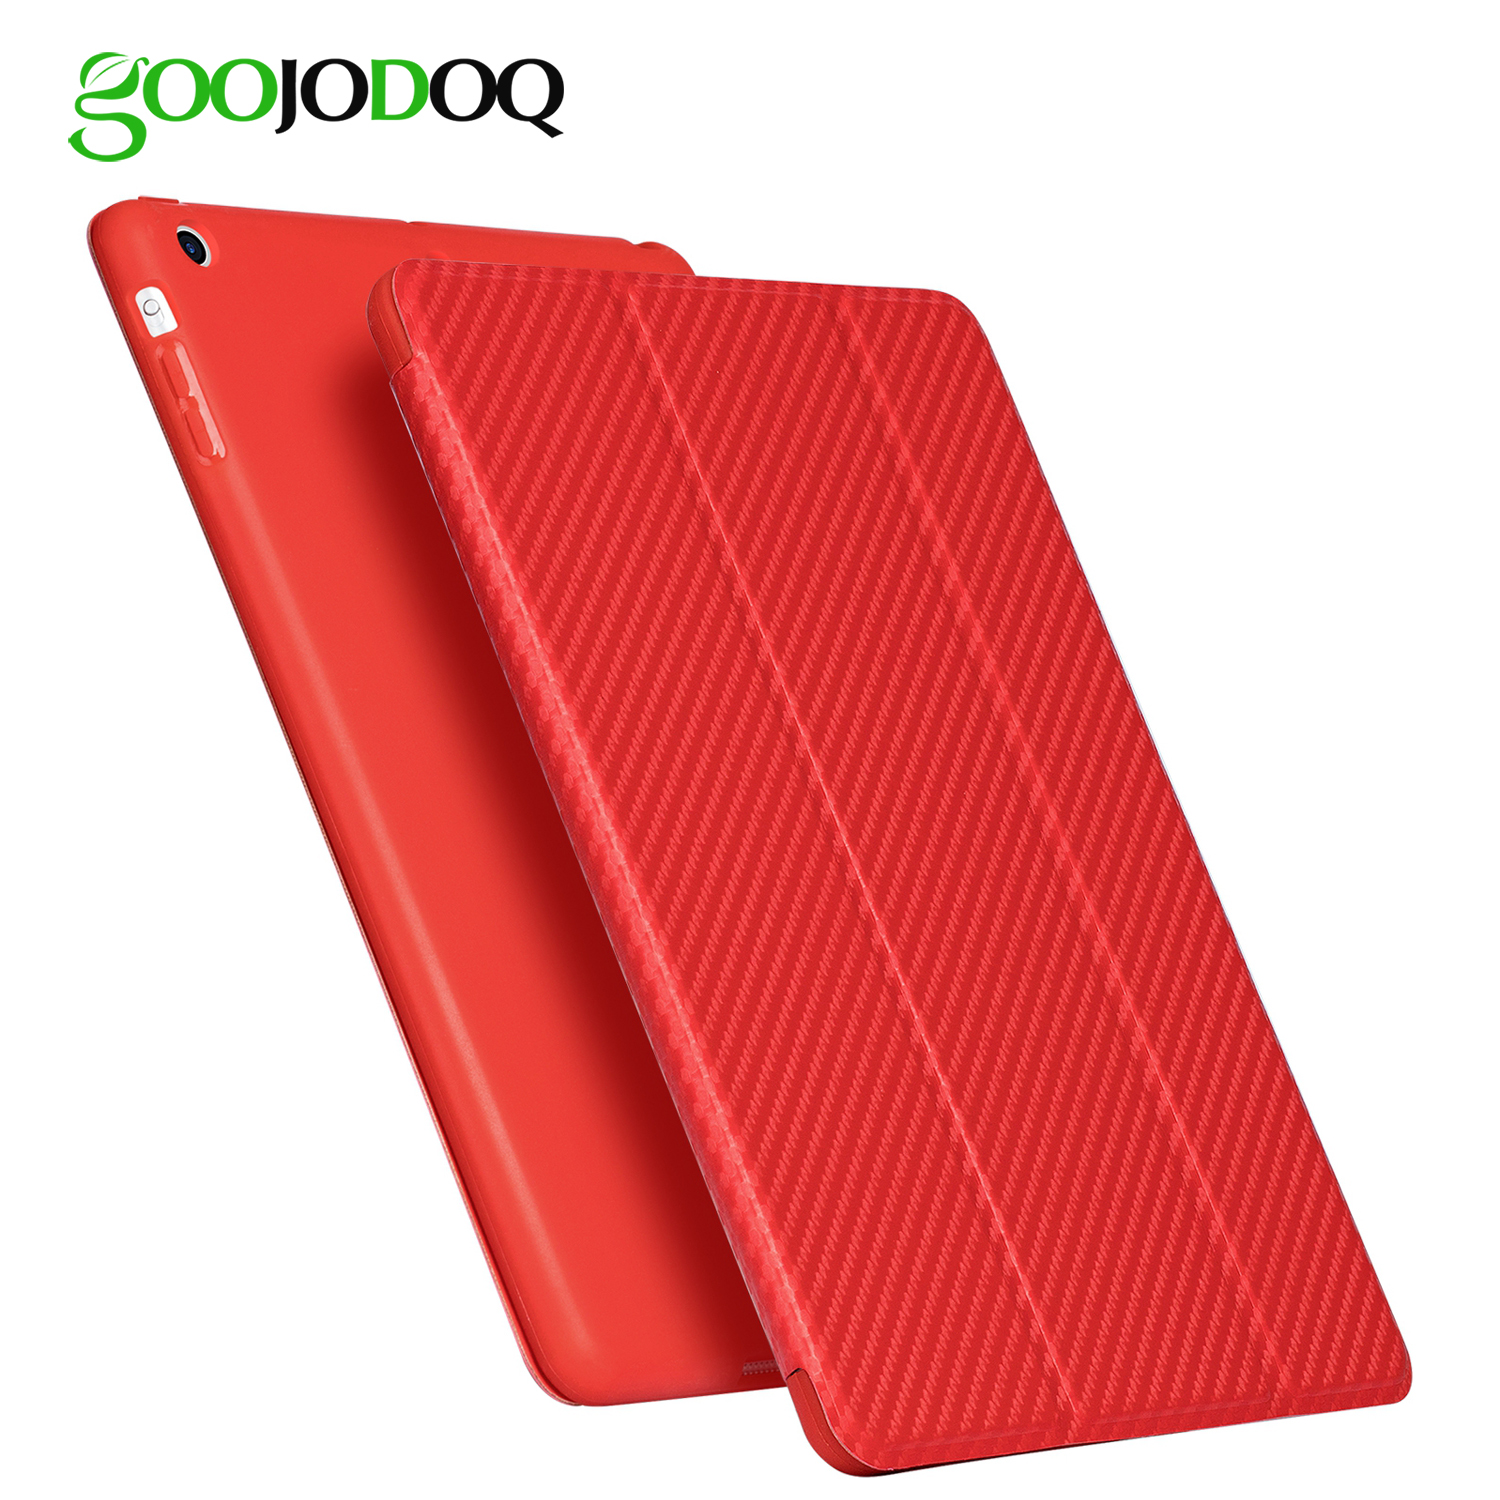 For iPad 2 case, GOOJODOQ Silicone Soft Back Shockproof Smart Cover for iPad 4 3 2 Case Sleep/Wake up PU Leather Case for iPad 4 dowswin case for ipad 2 3 4 soft back cover tpu leather case for ipad 4 flip smart cover for ipad 2 case auto sleep wake up